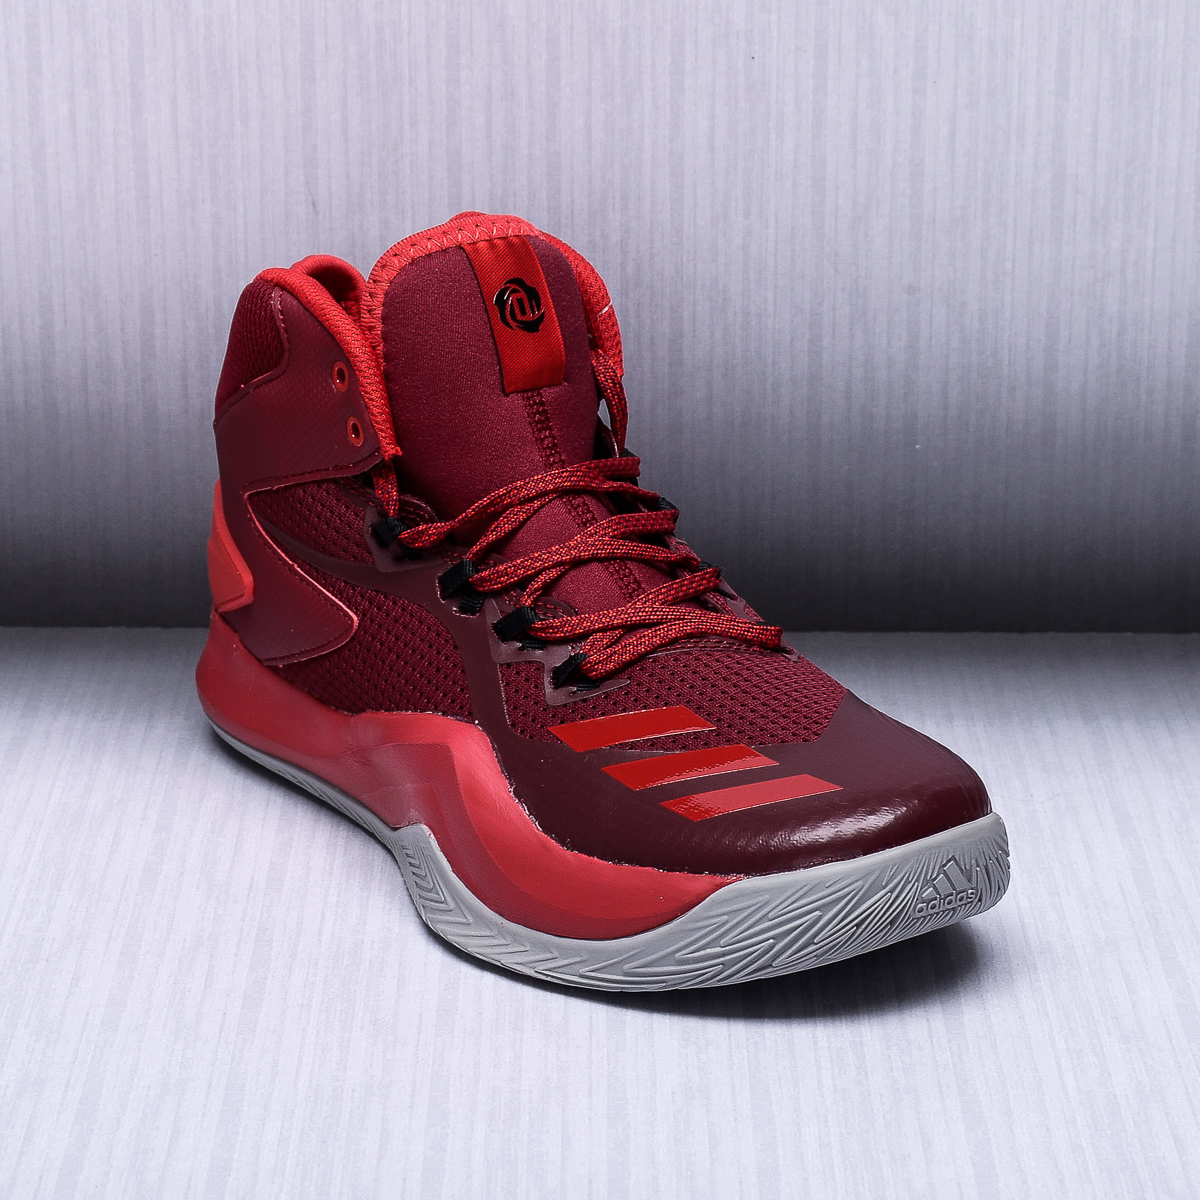 adidas basketball shoes rose